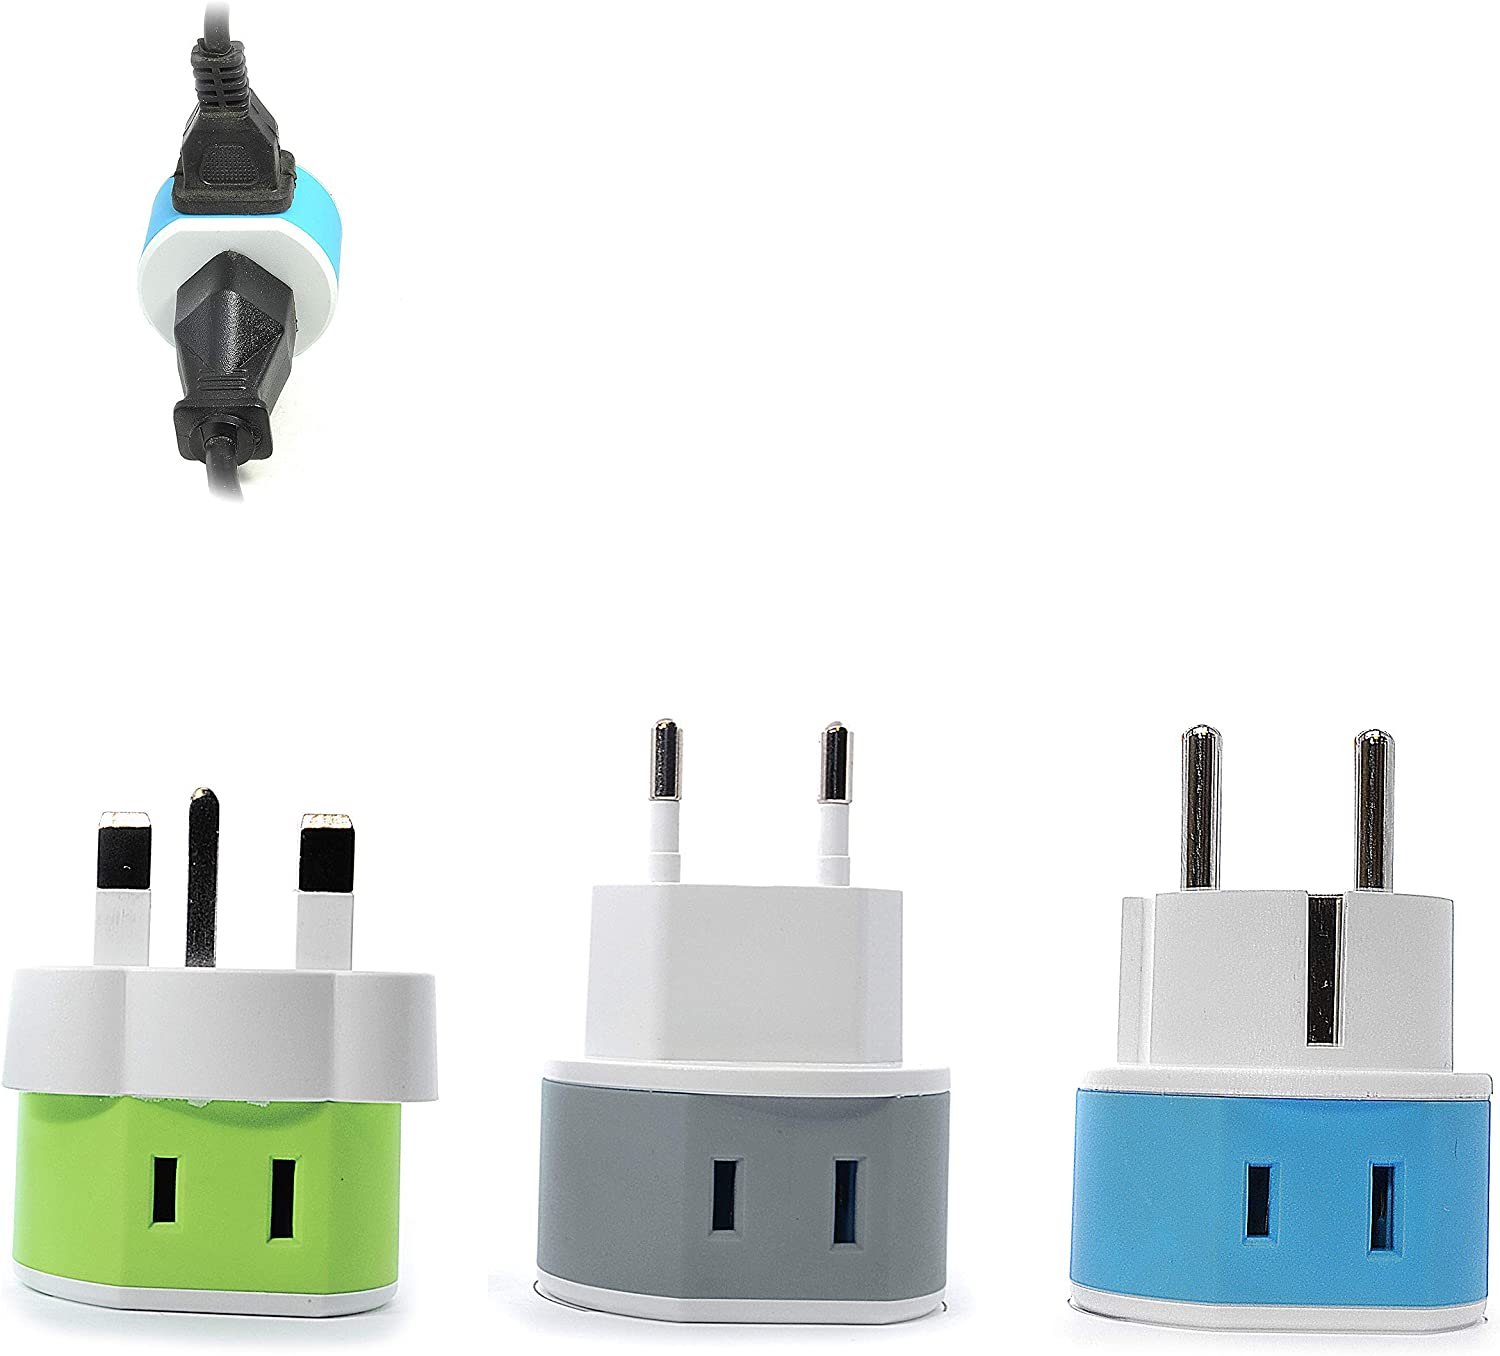 Full European Travel Adapter Set by OREI - Dual Input American to Europe, Germany, England, Spain, Italy, Iceland, France, (Type G, E/F, Type C) - 3 Pack, Safe Grounded Use for Cell Phones, Laptops